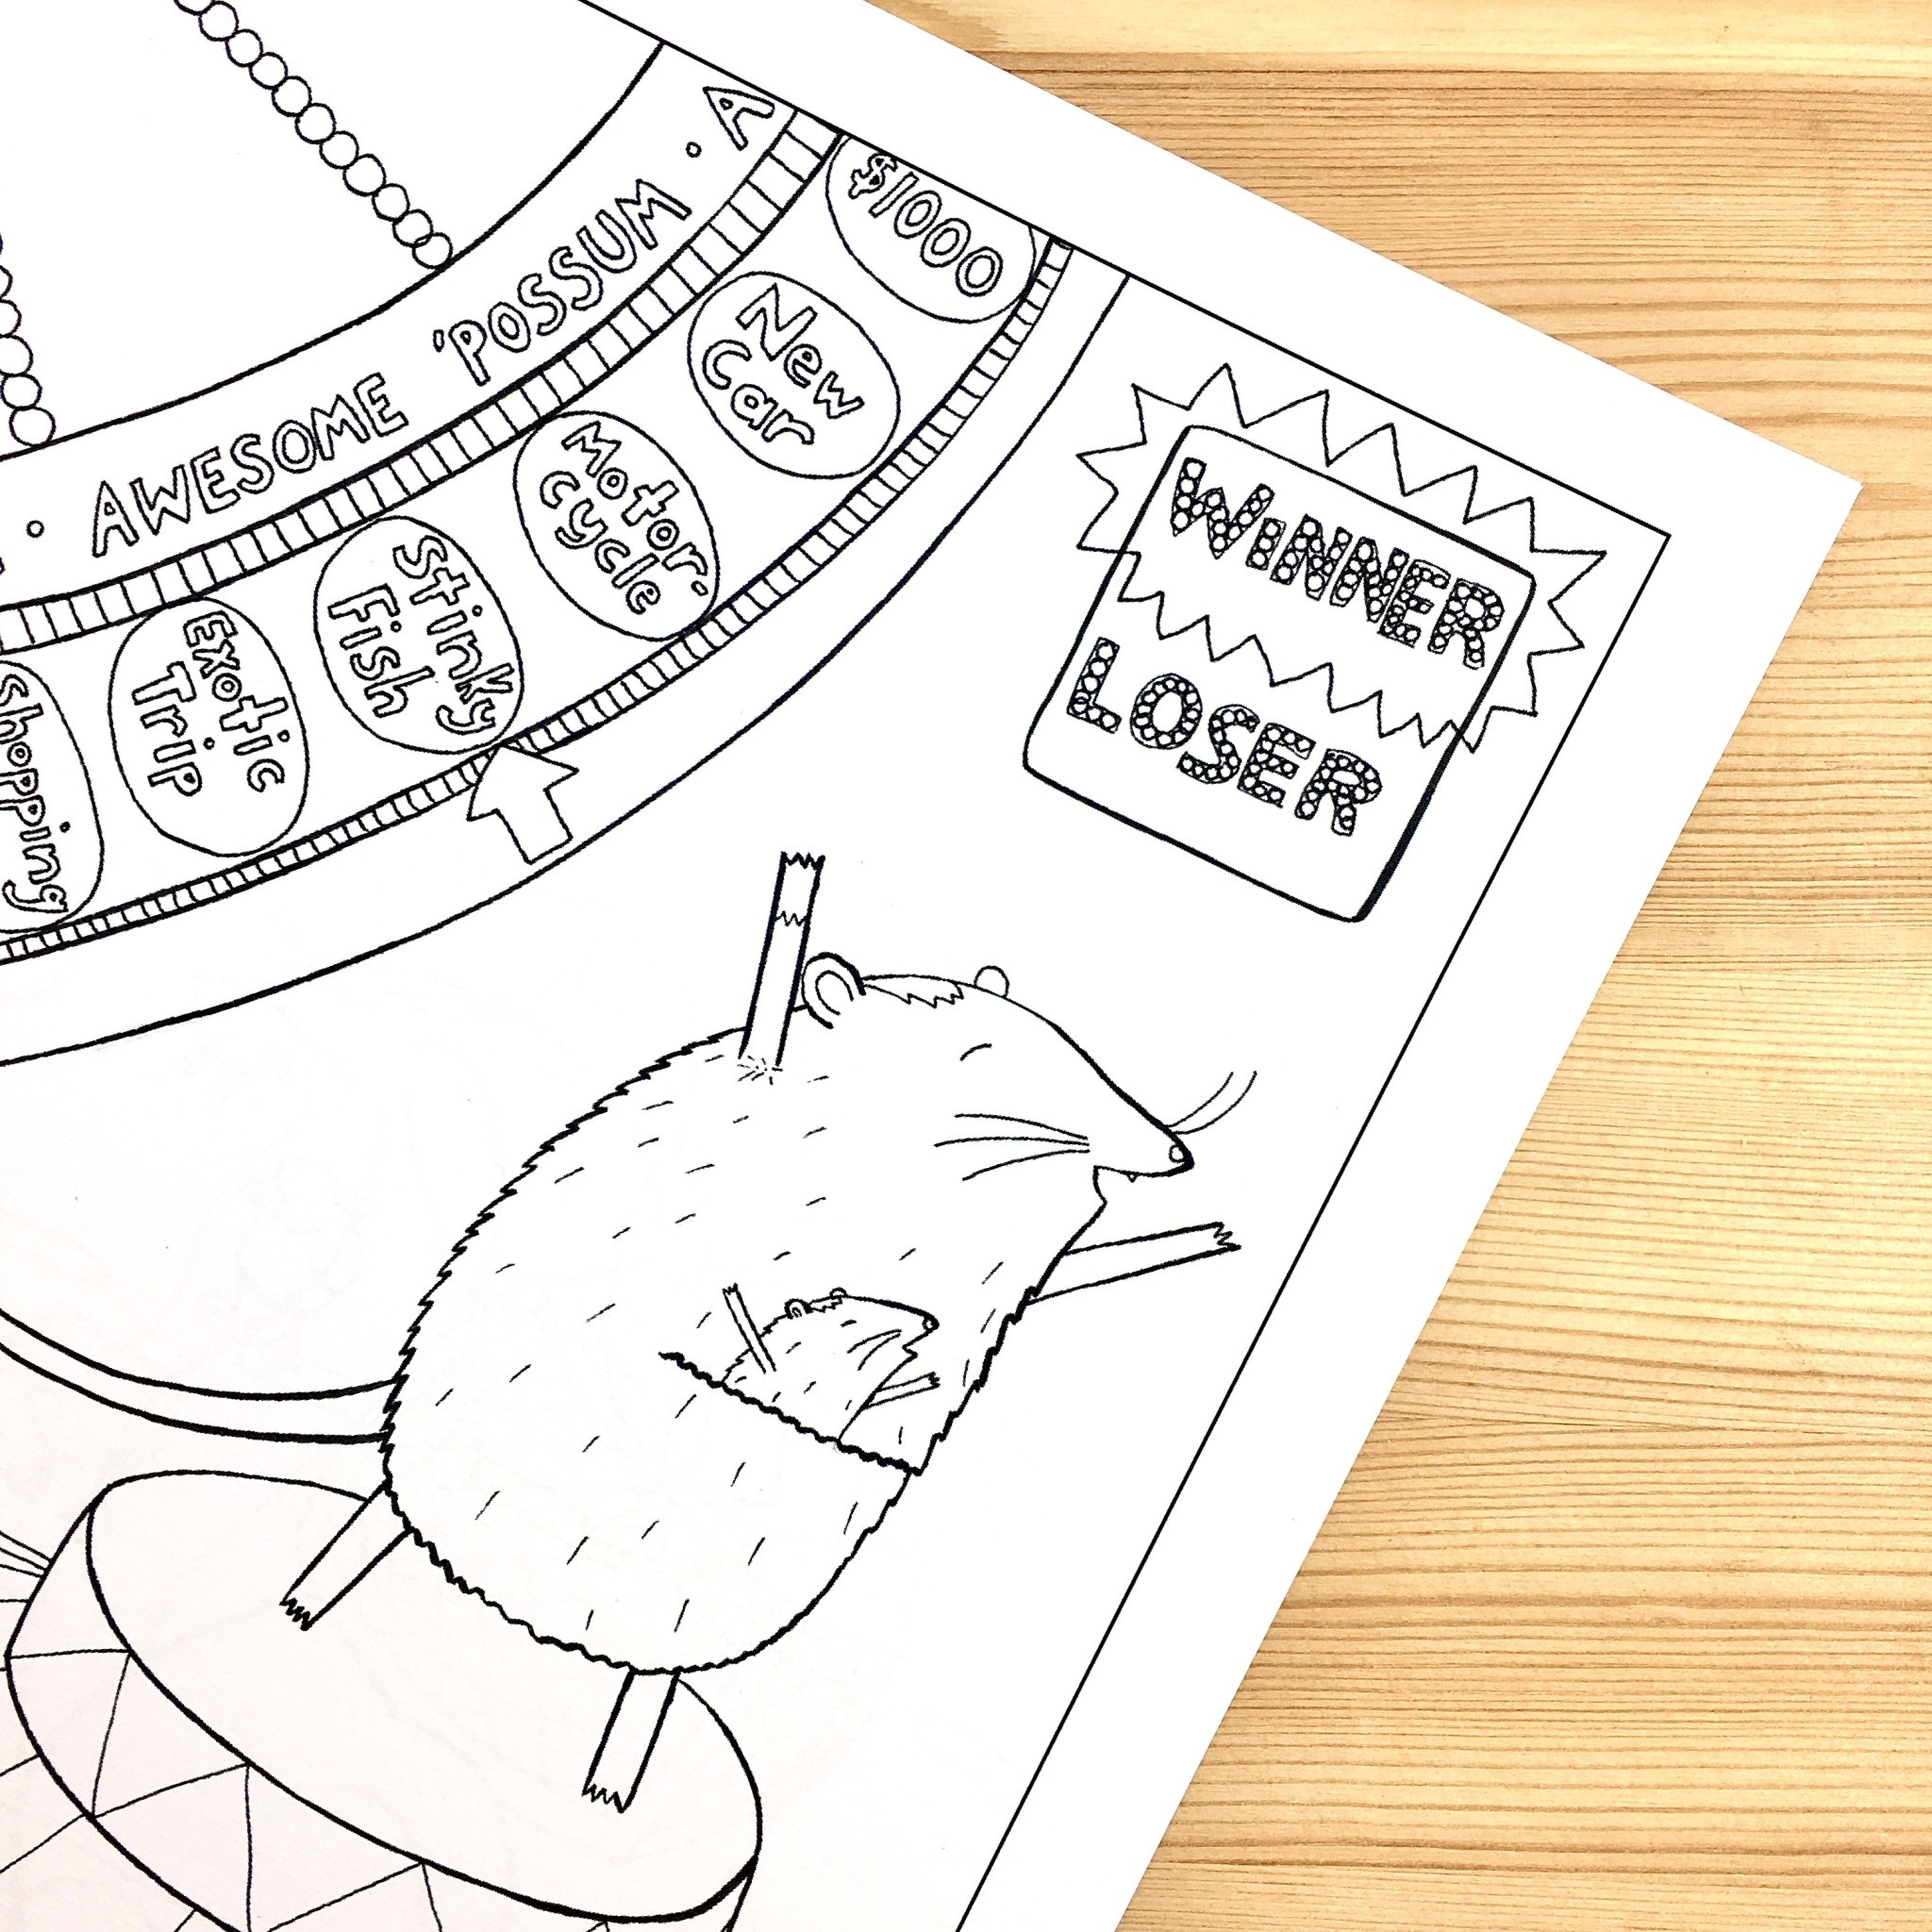 Cordial Kitten Animals with Jobs Coloring Book